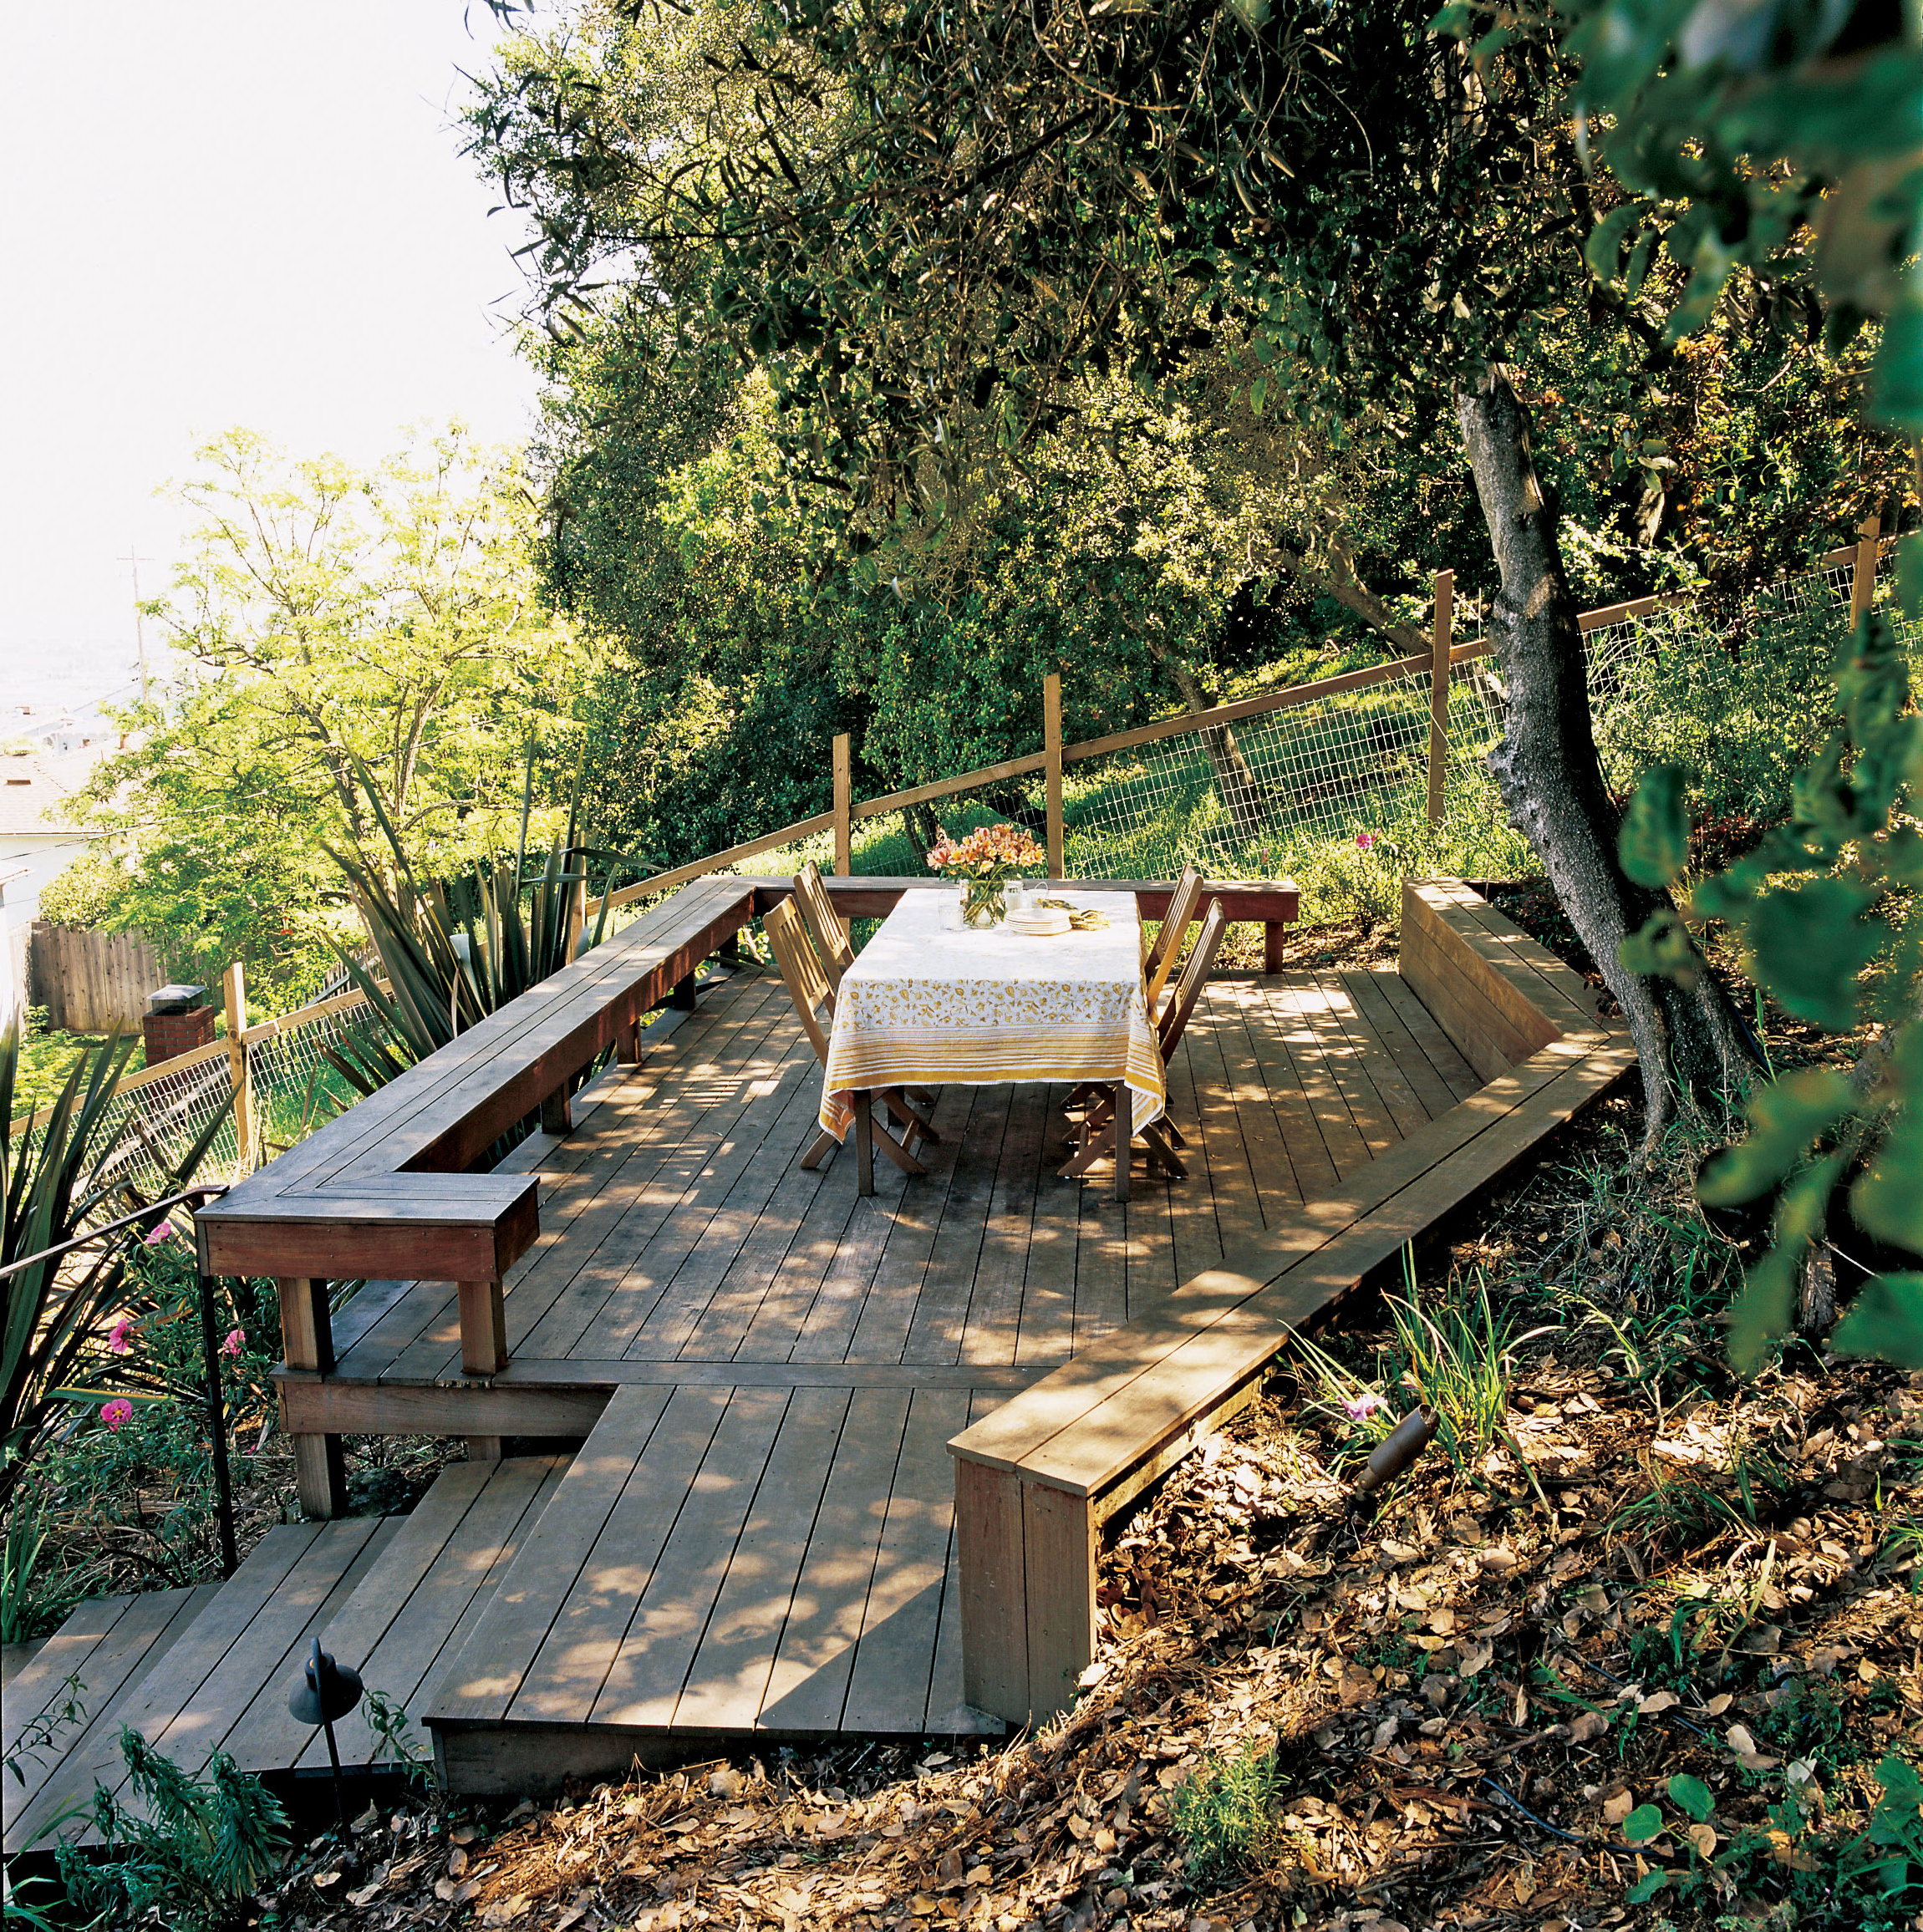 40 Great Ideas for Decks - Sunset Magazine